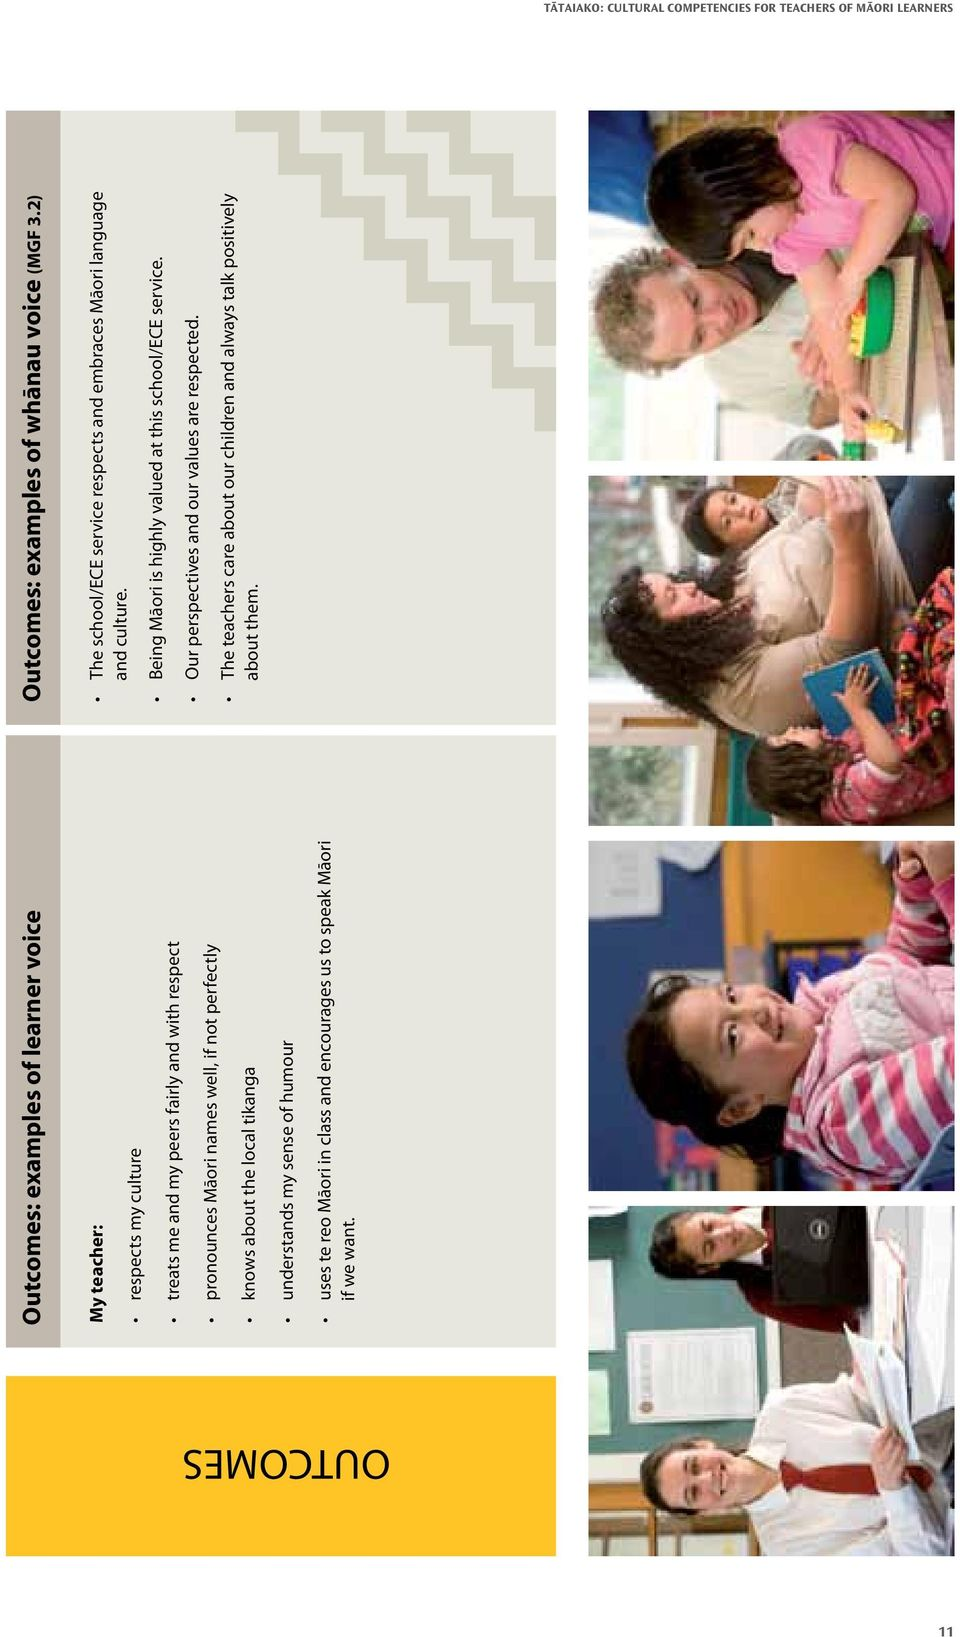 Outcomes: examples of whānau voice (MGF 3.2) The school/ece service respects and embraces Māori language and culture.